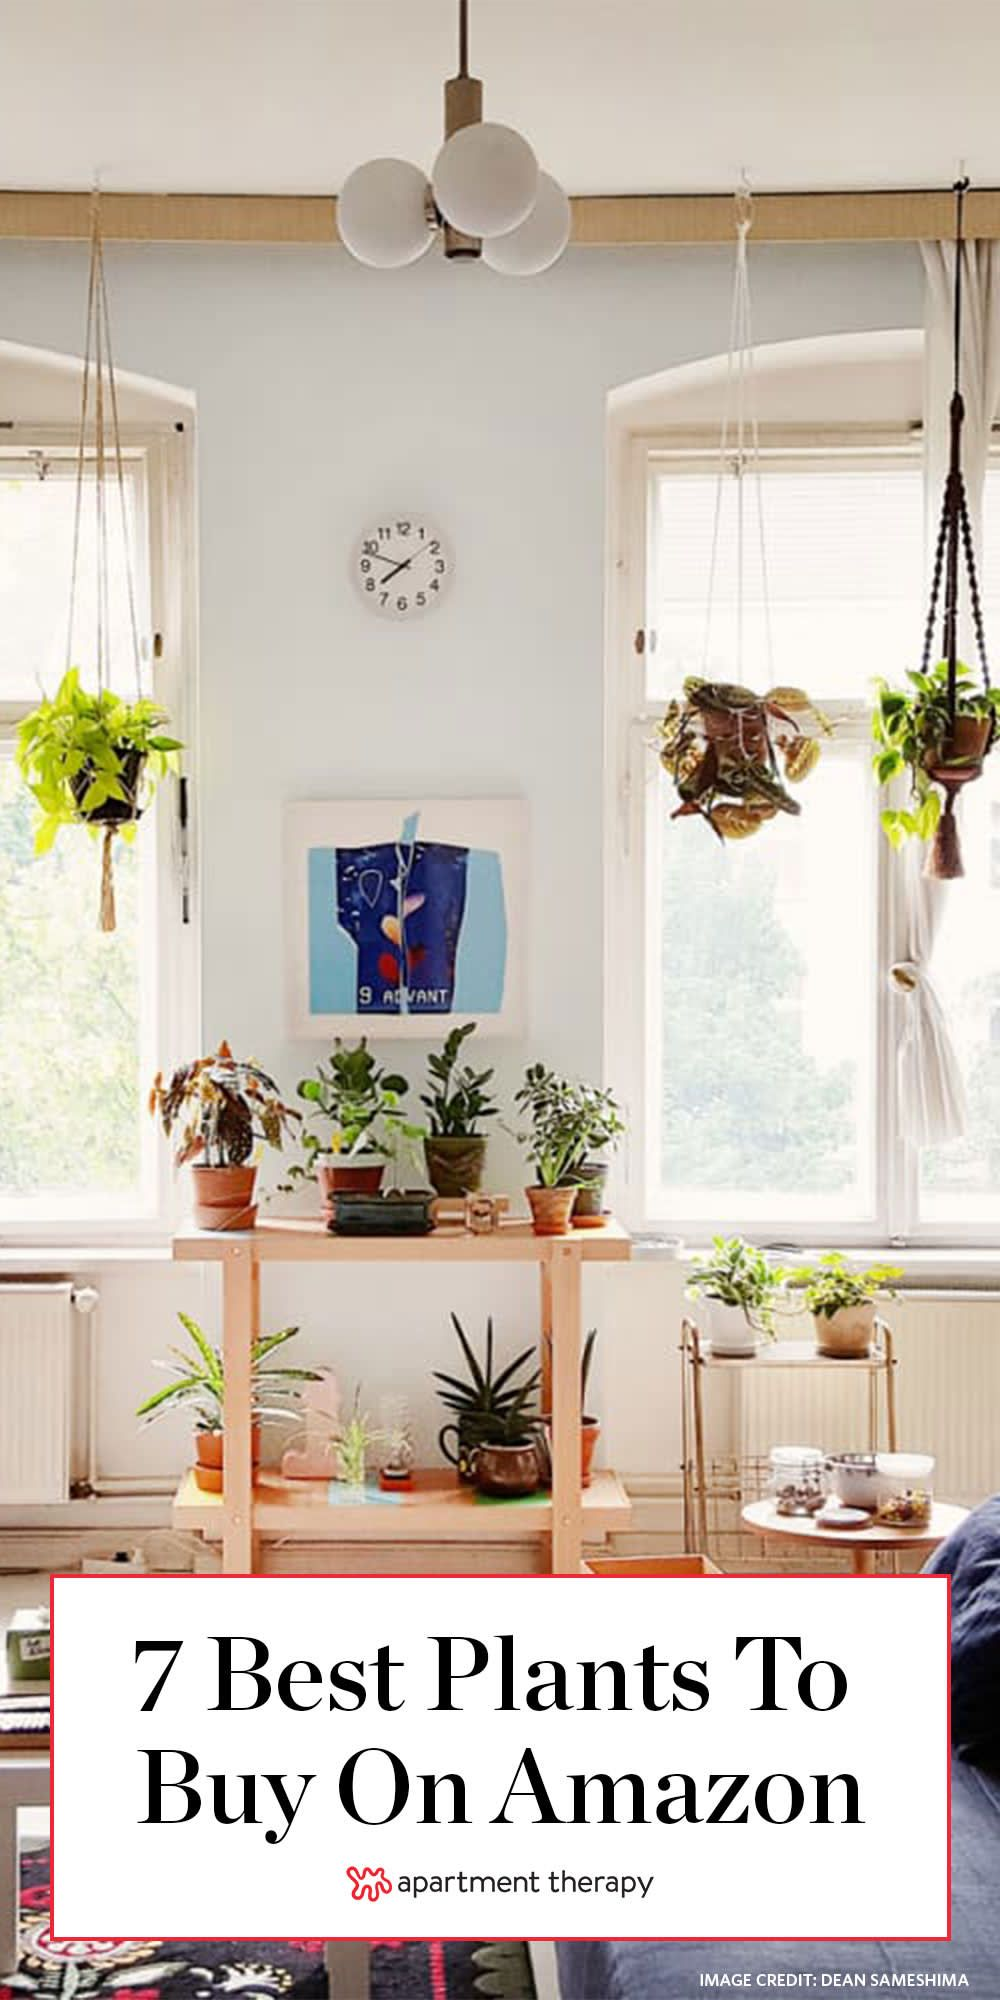 7 Plants You Can Buy on Amazon to Make Your Winter a